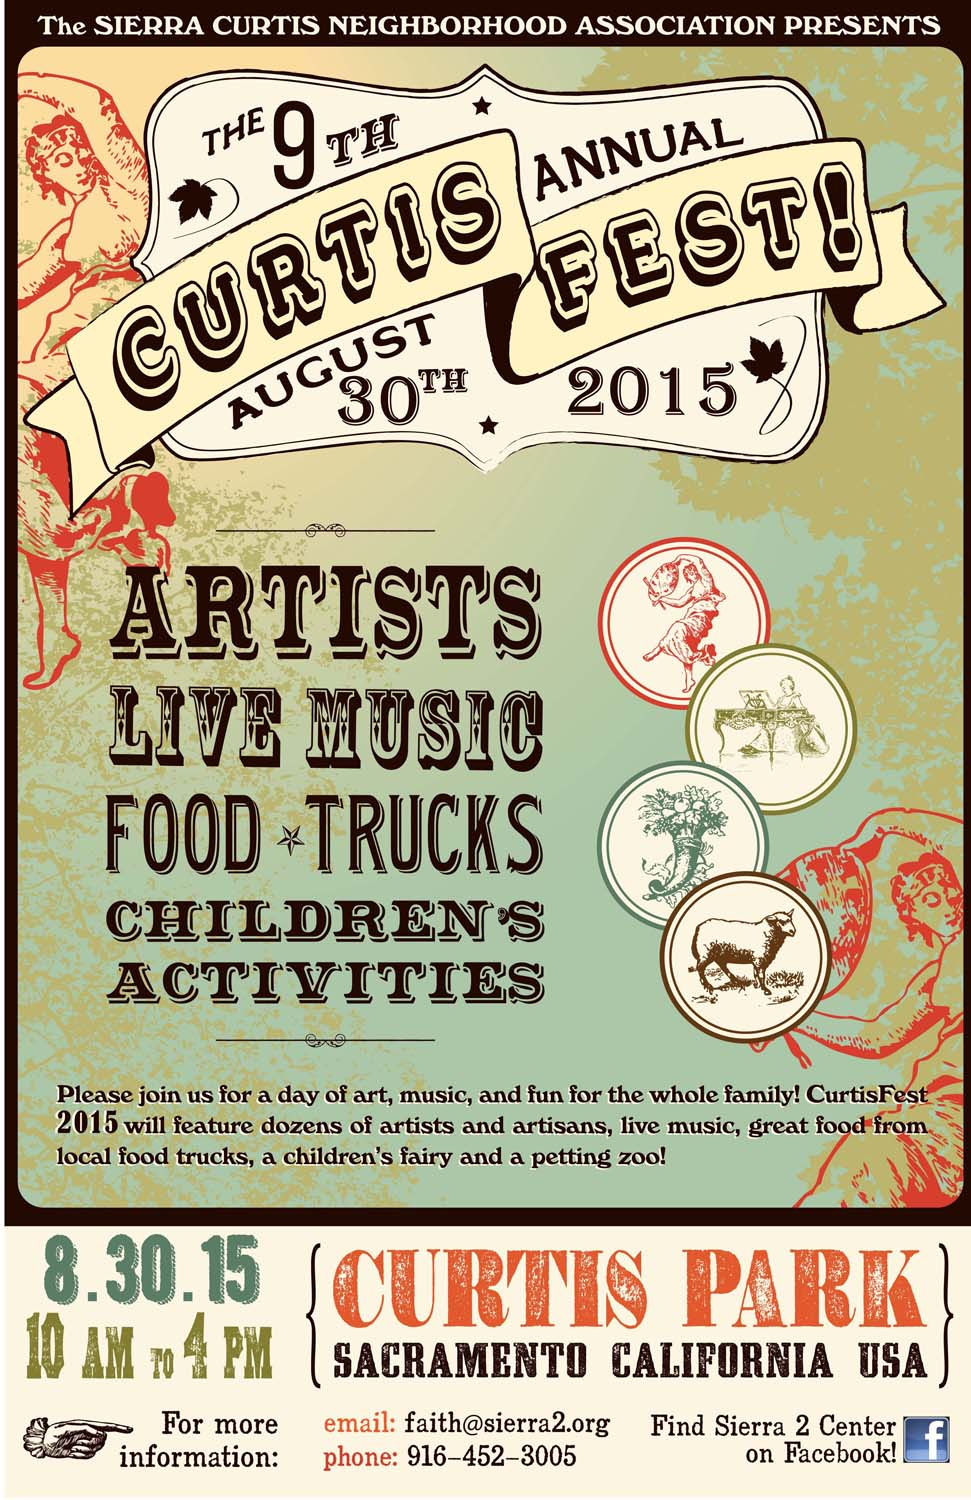 9th Annual Curtis Fest